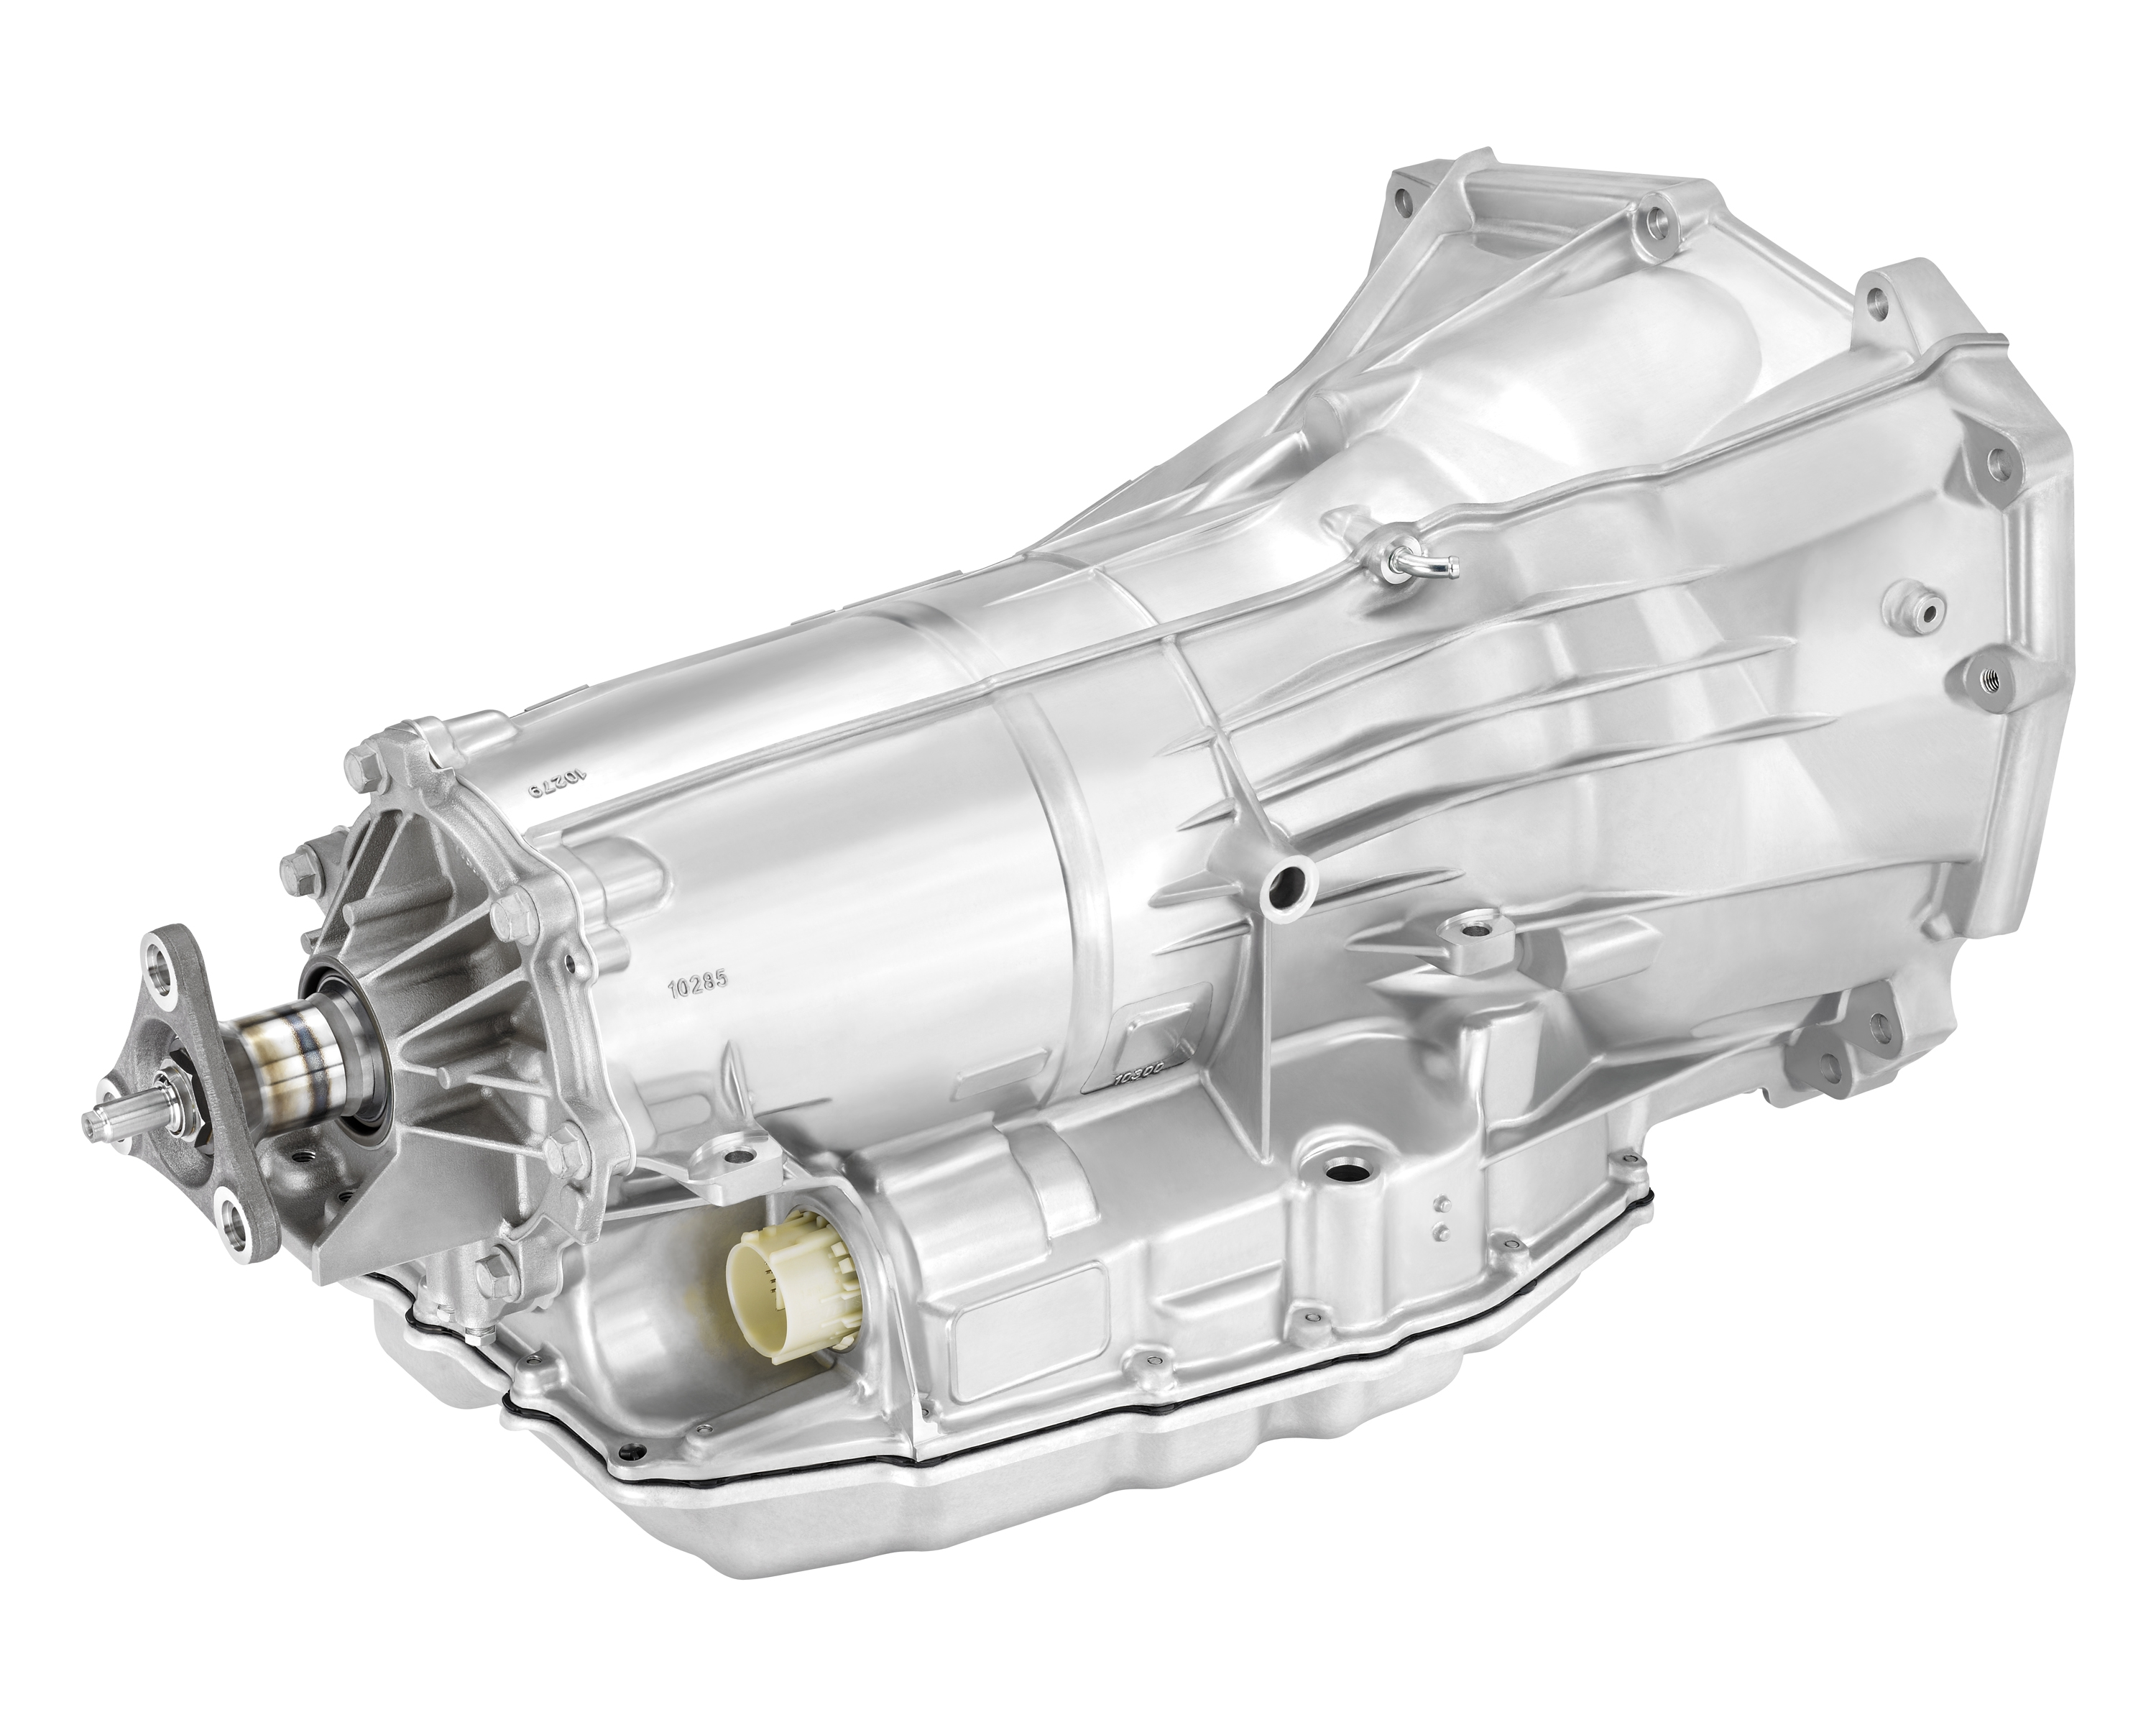 2016-Cadillac-CT6-Powertrain-AutoTrans-002.jpg